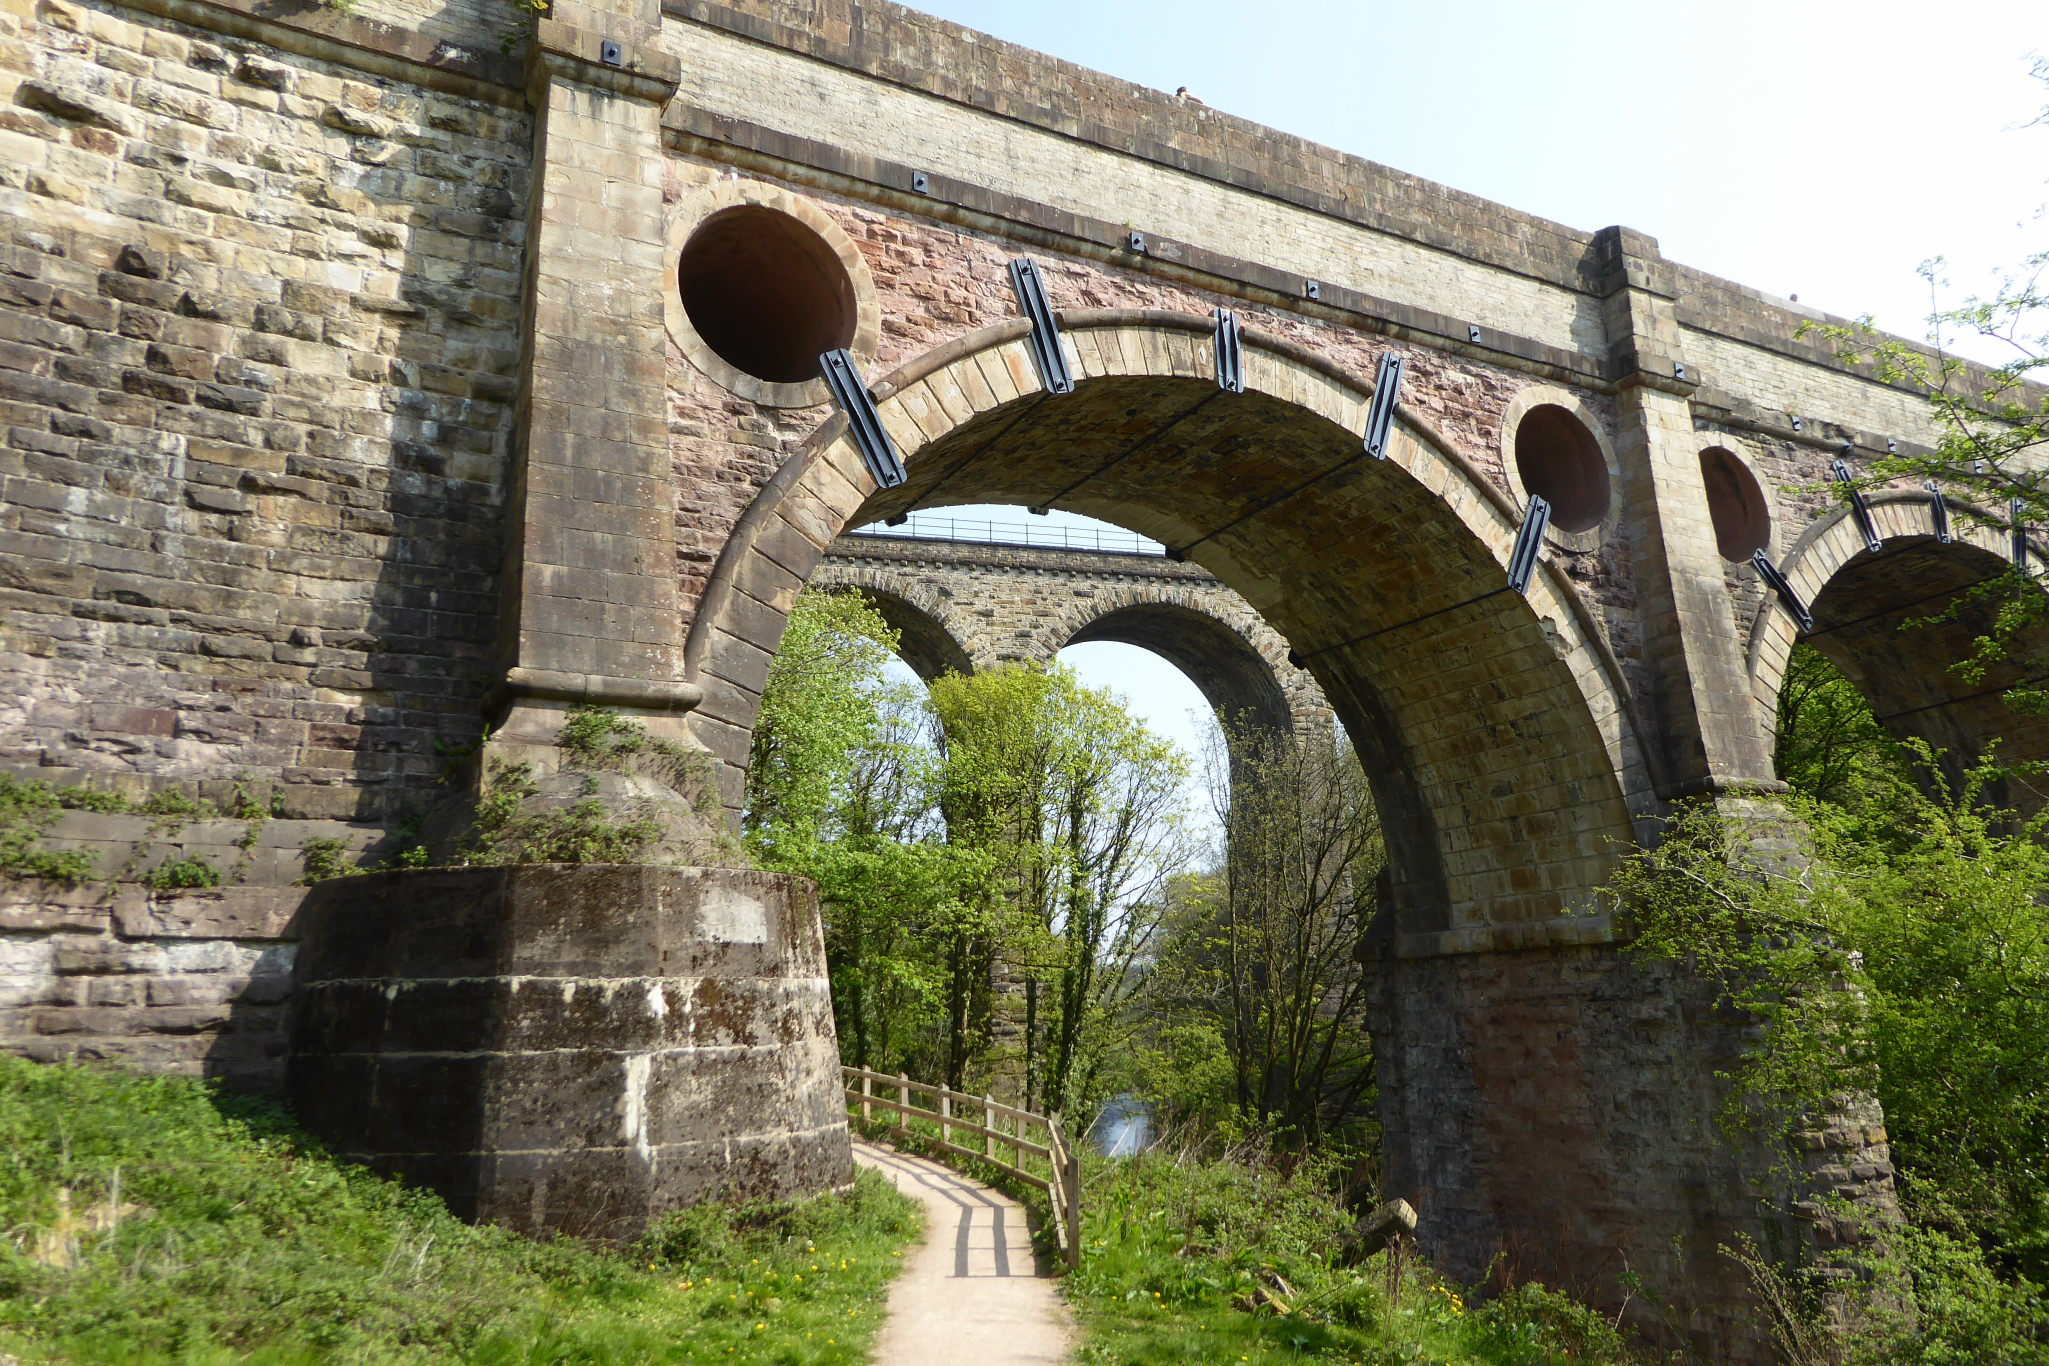 Marple Aqueduct and Viaduct